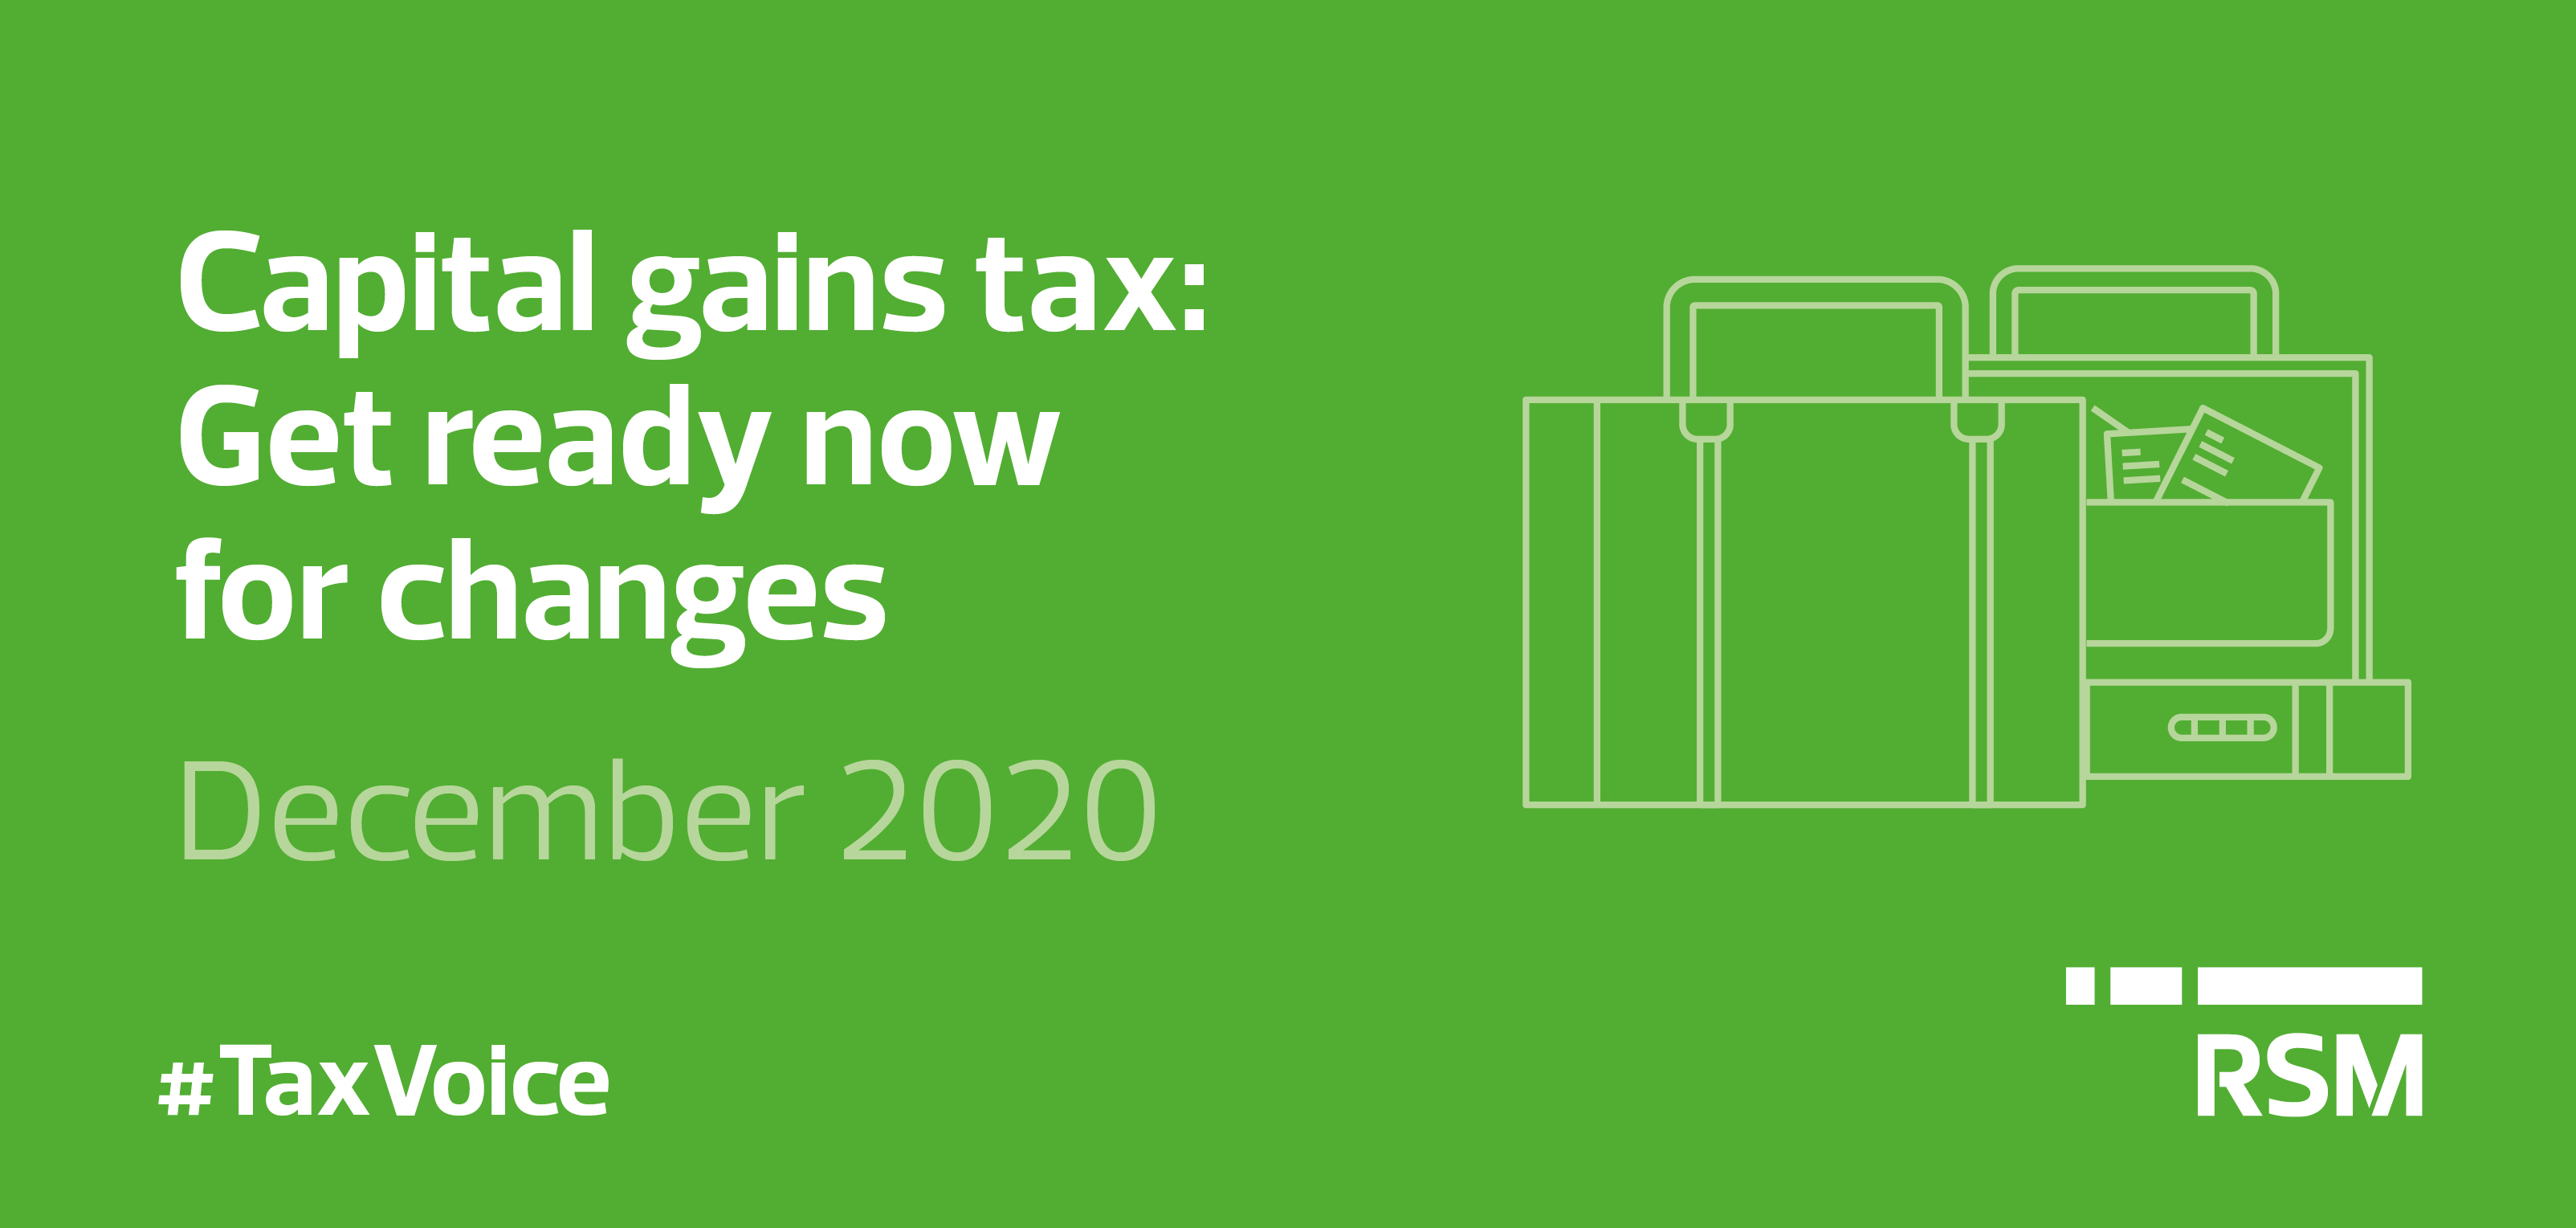 Capital gains tax: get ready now for changes